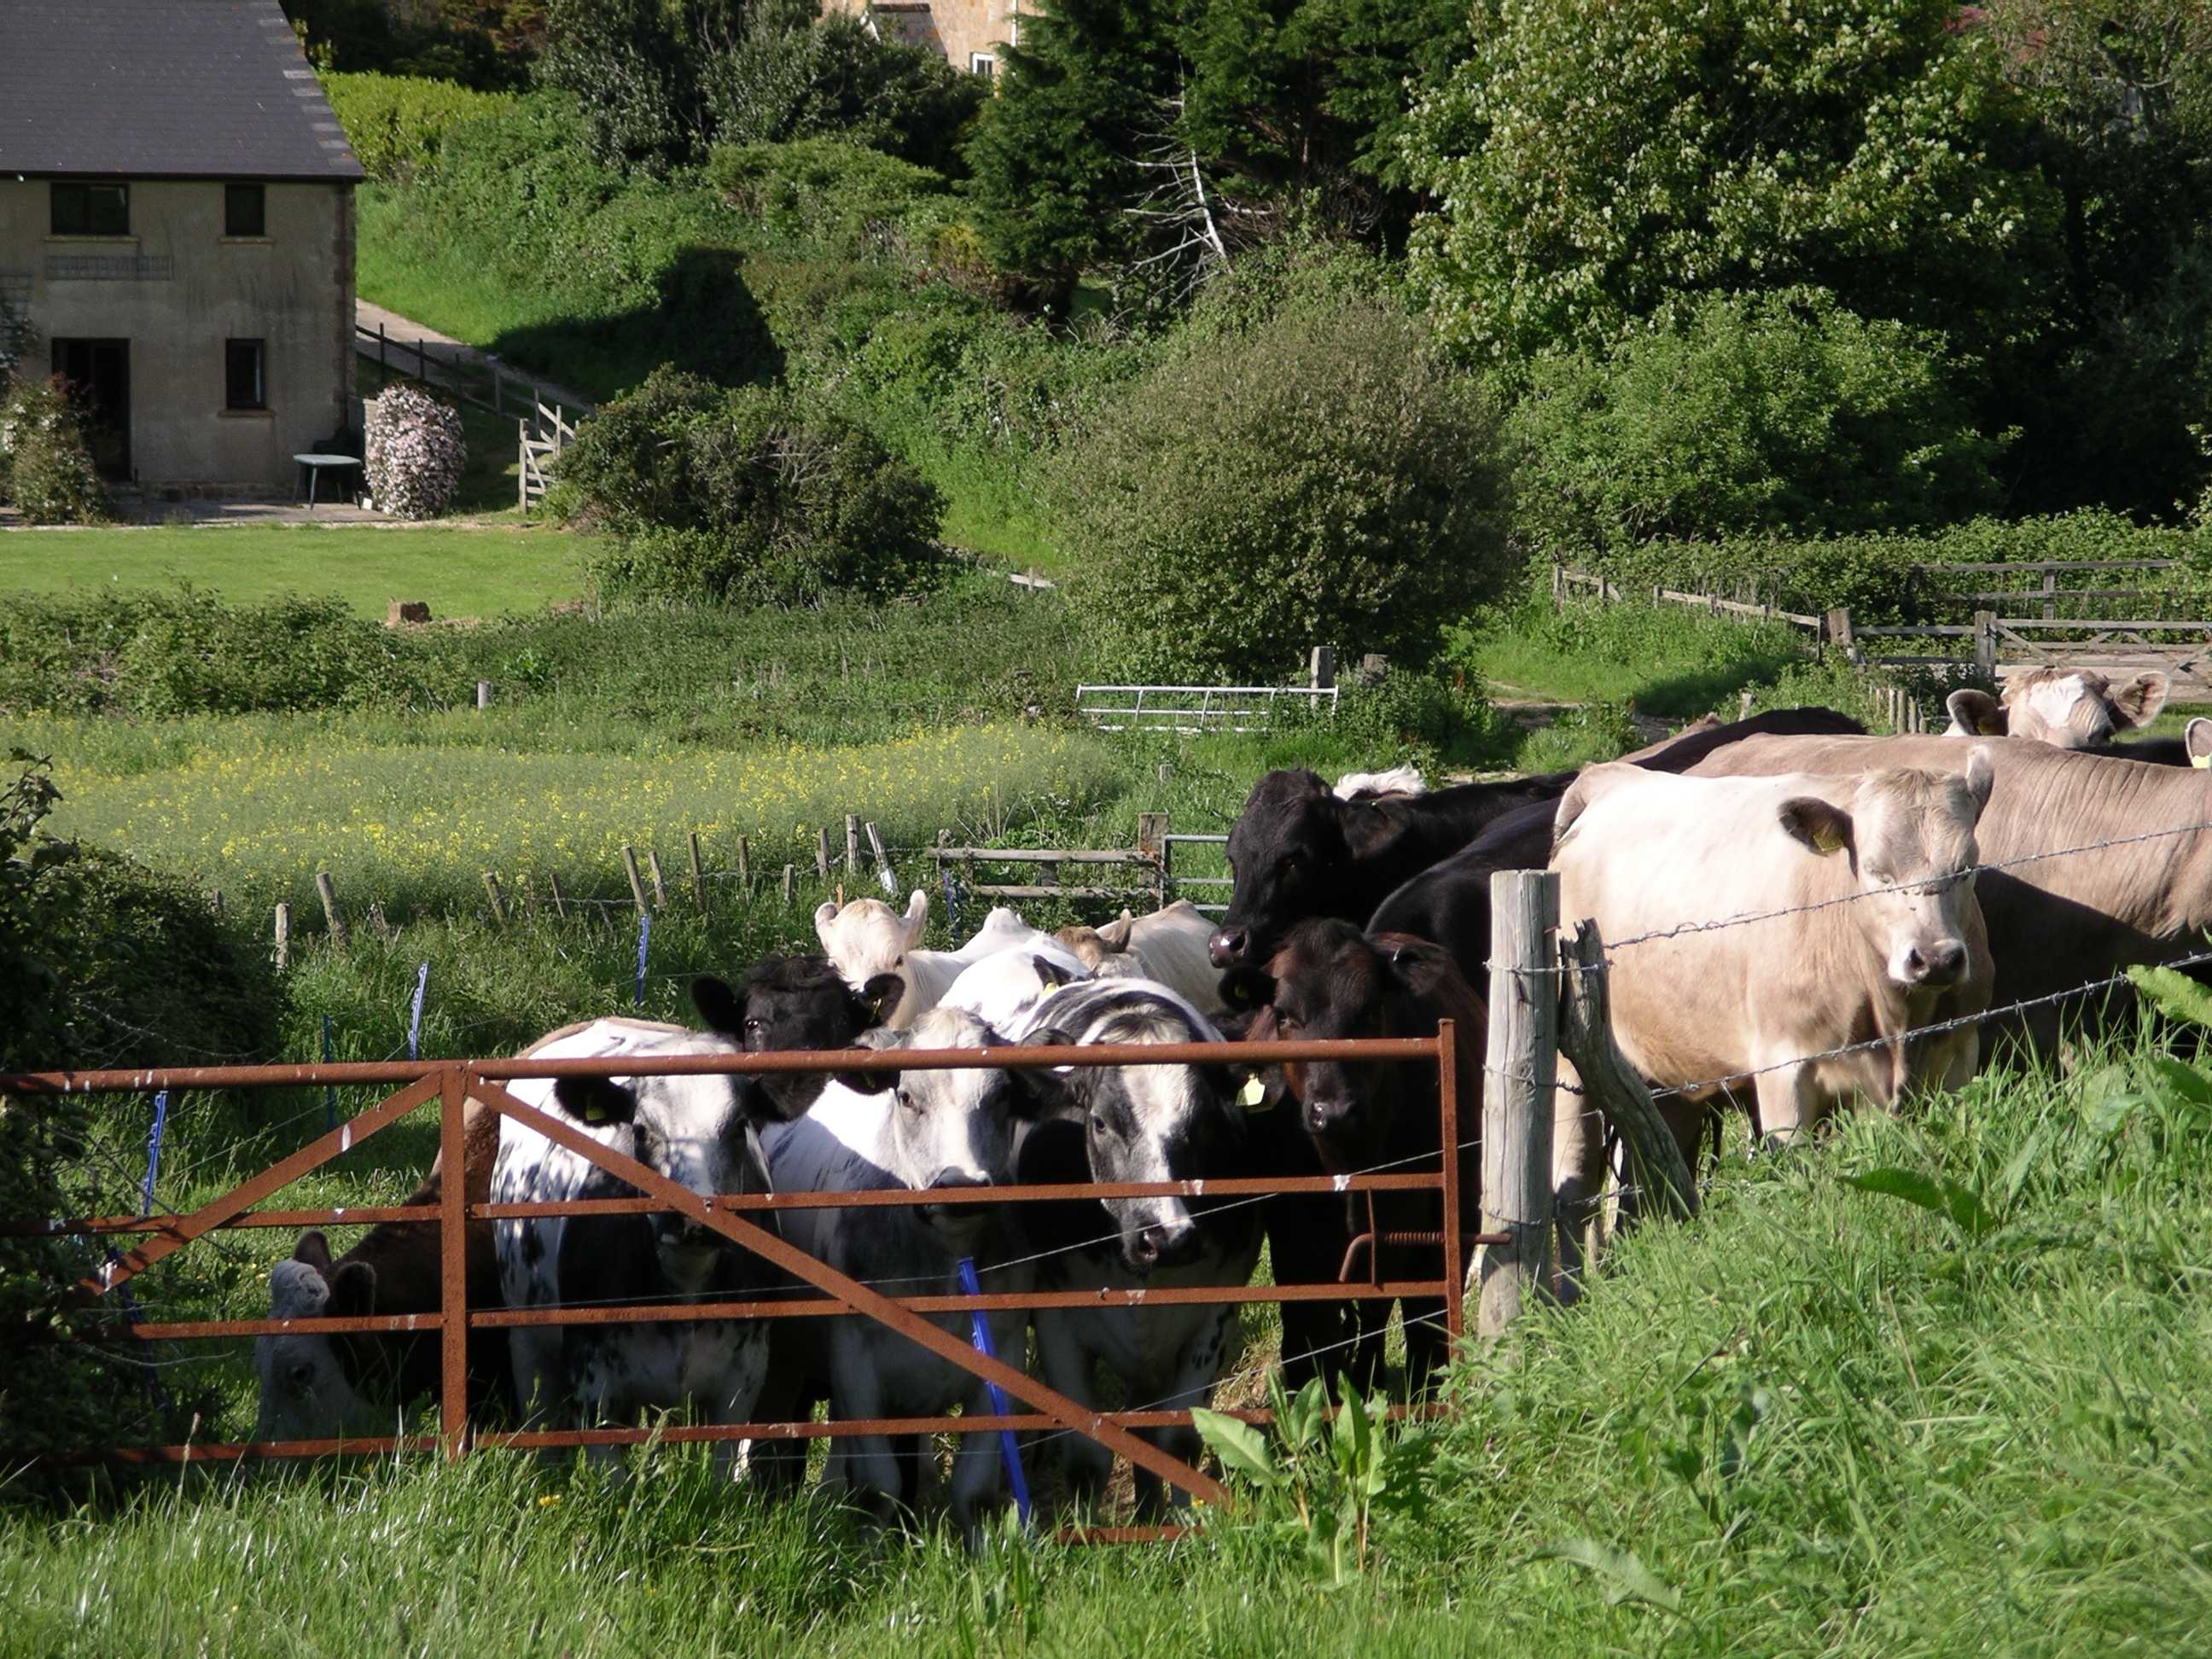 Cows Small.JPG (642731 bytes)